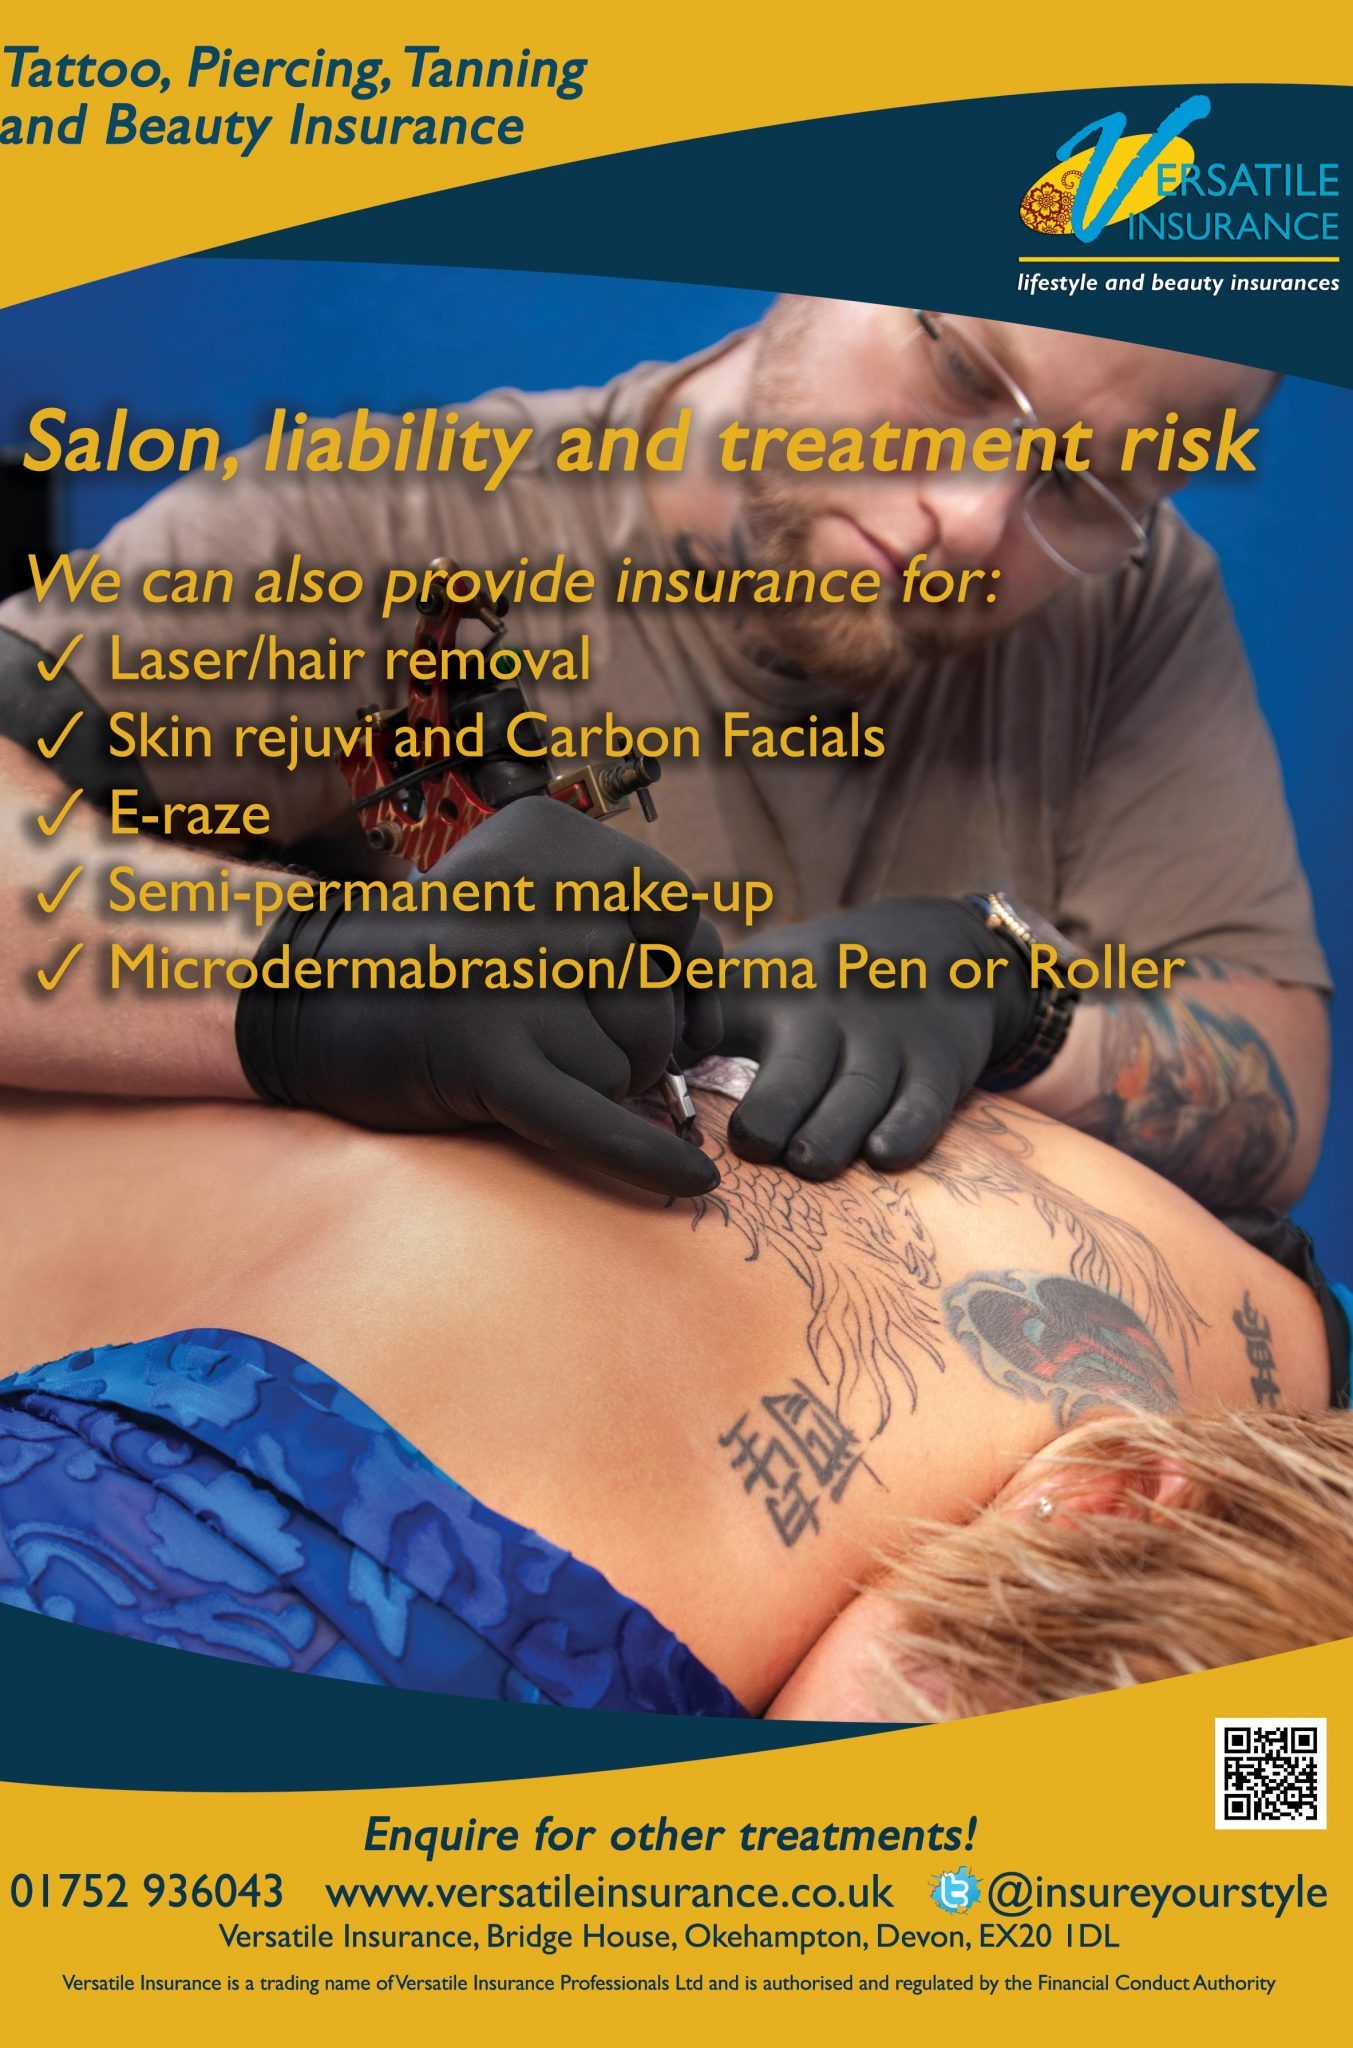 Versatile ad - Tattoofan - full page-page-001